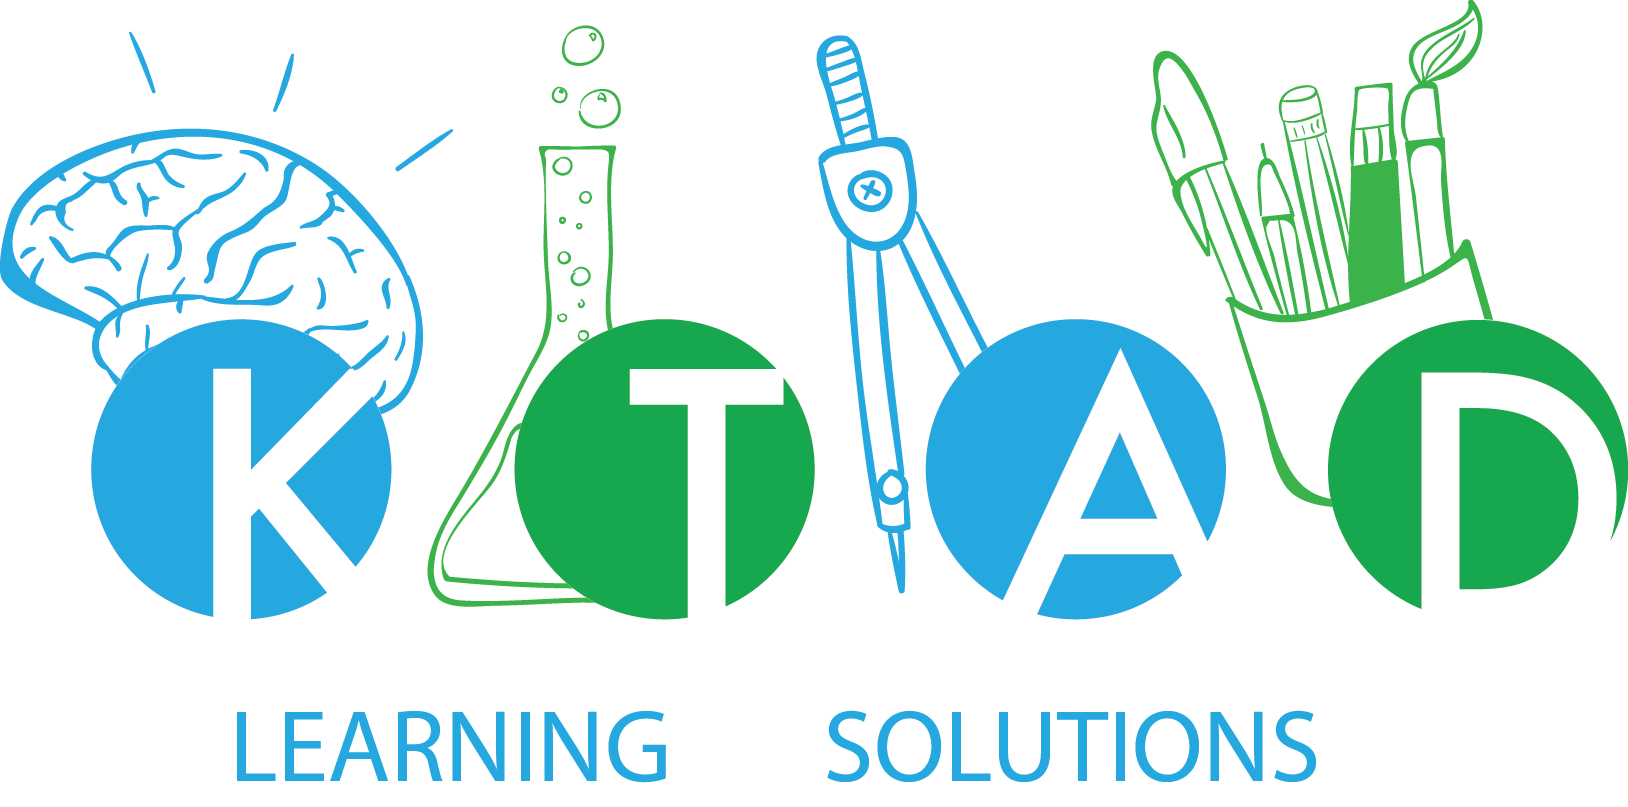 K-Tad Learning Solutions - WCI Client